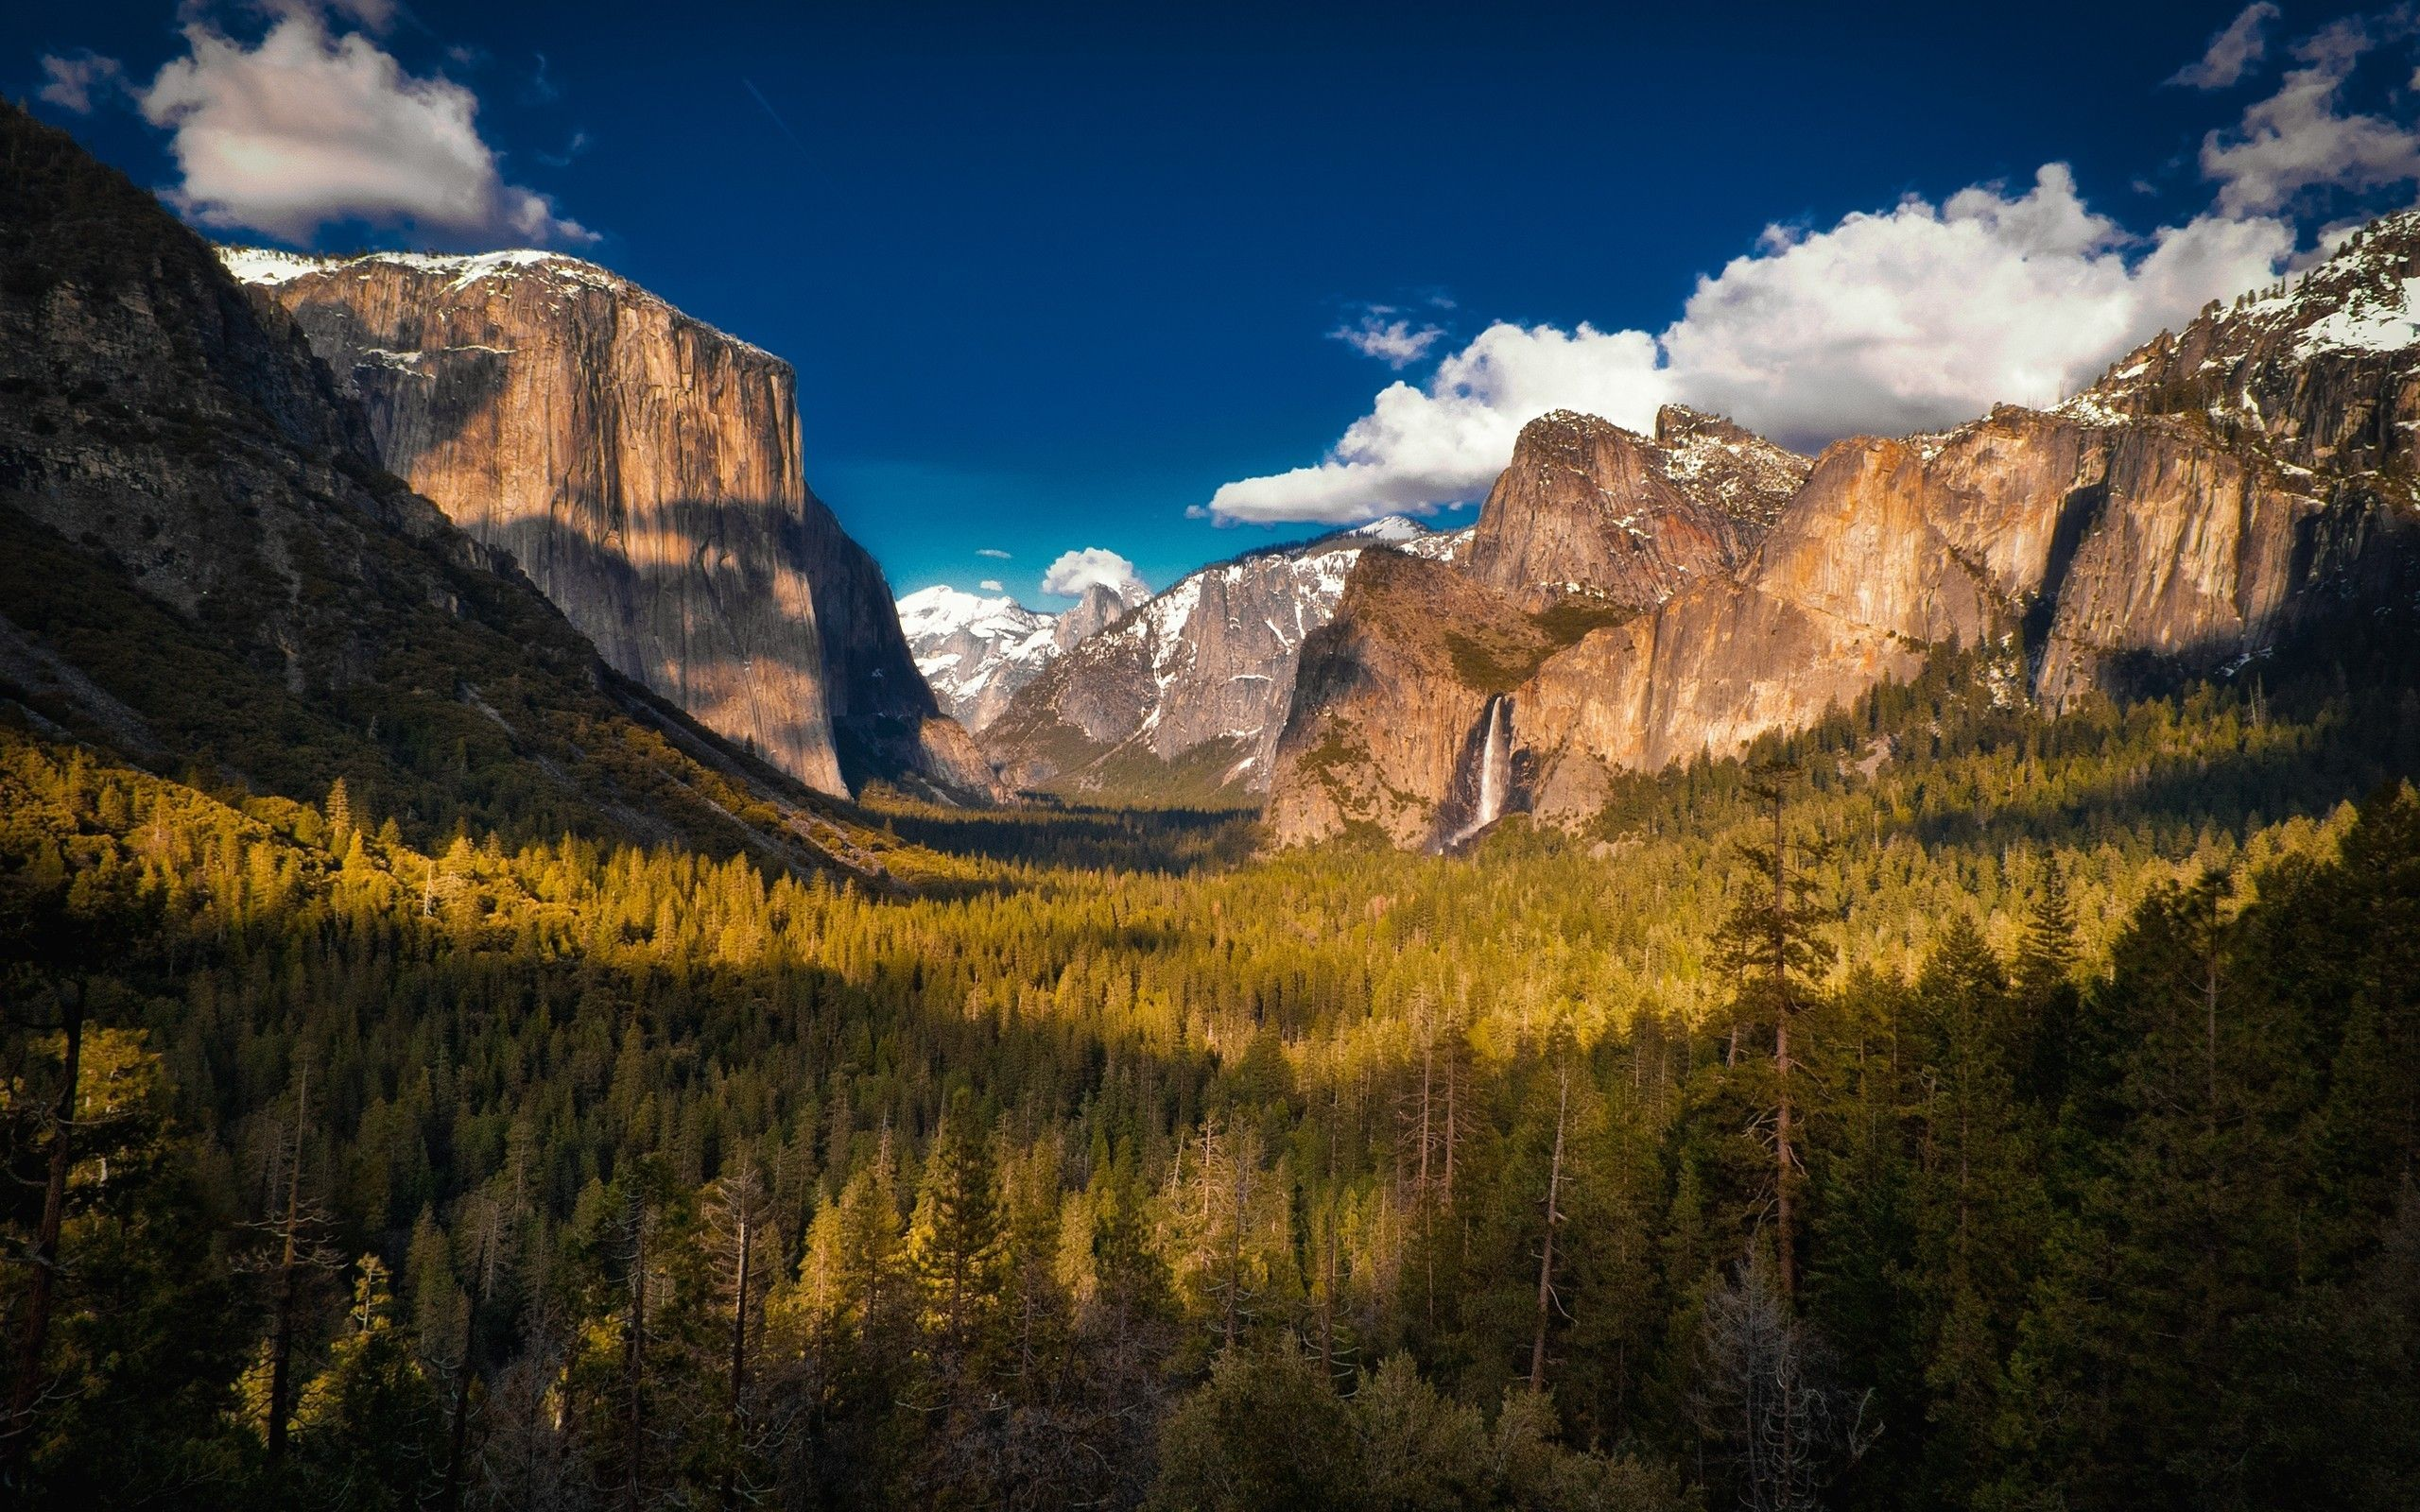 general 2560x1600 forest mountains nature clouds yosemite national park